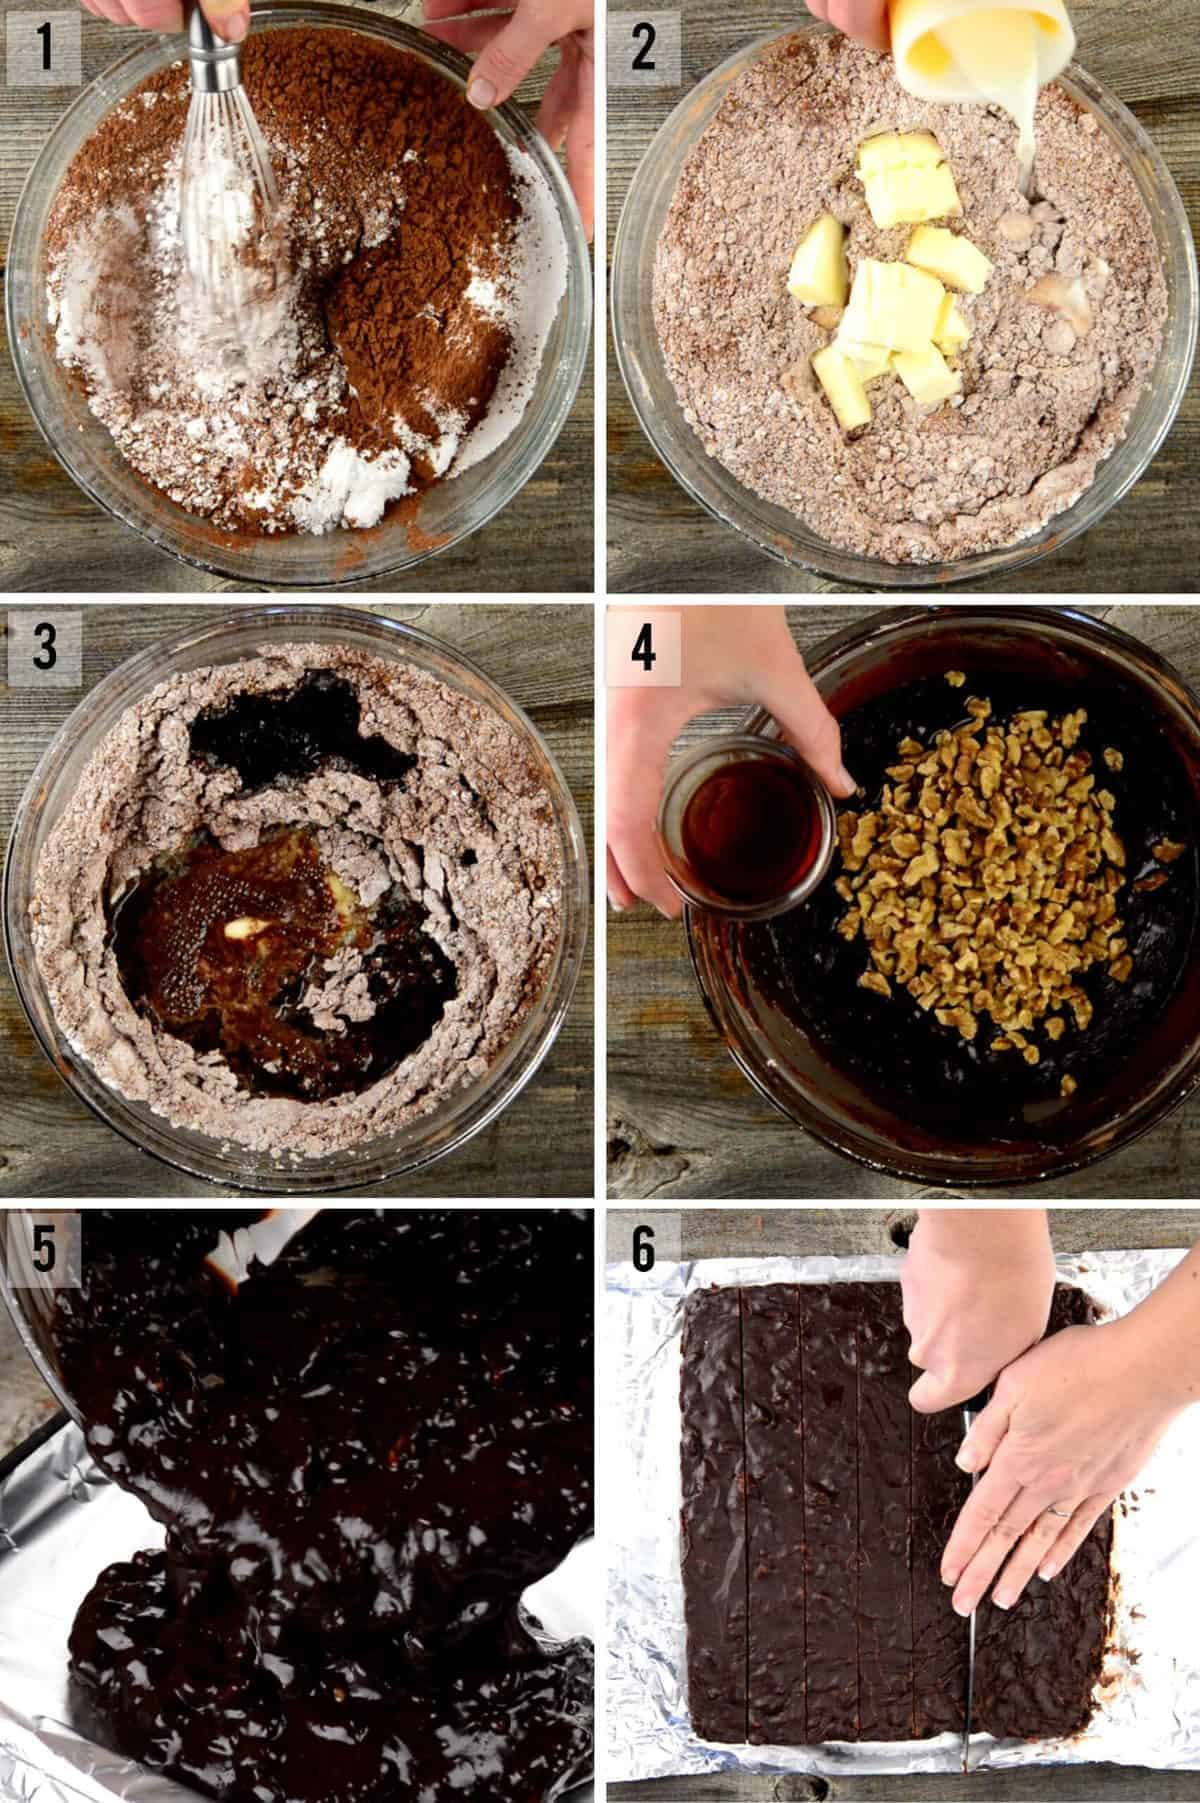 step by step process photos of how to make microwave fudge